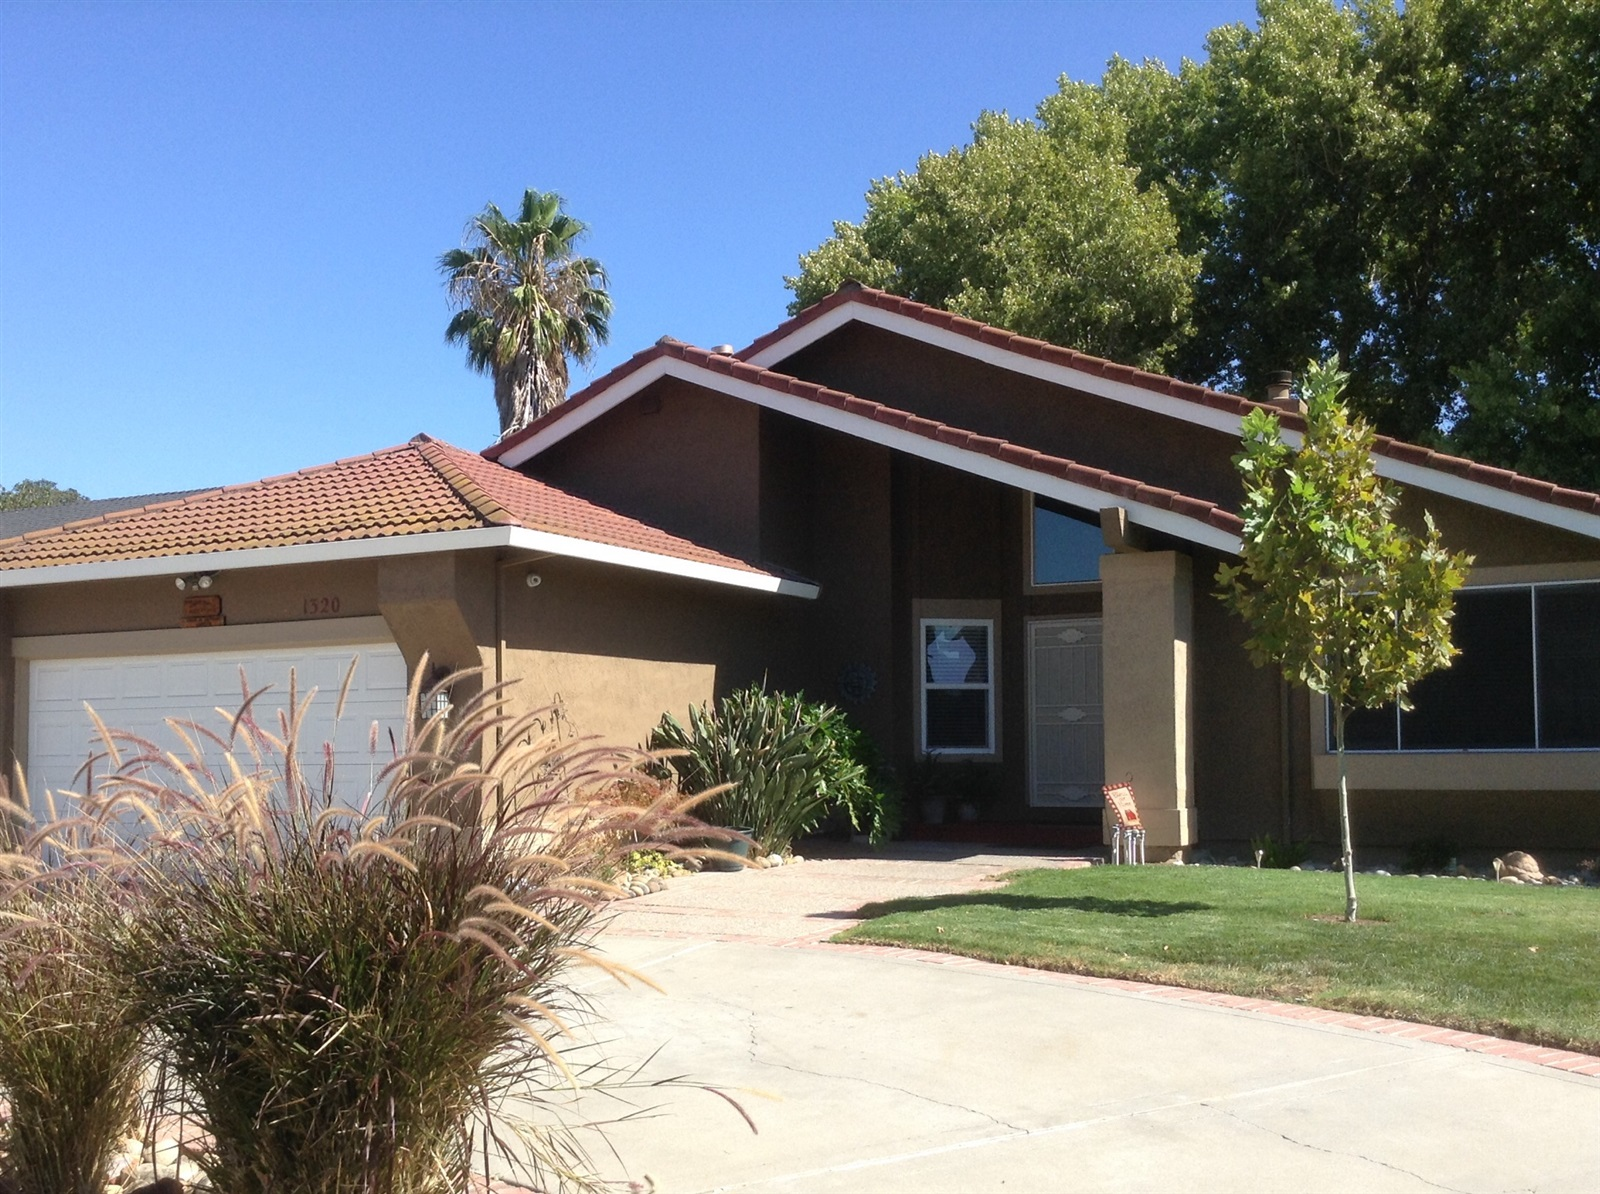 1320 Renown Dr, Tracy, CA 95376